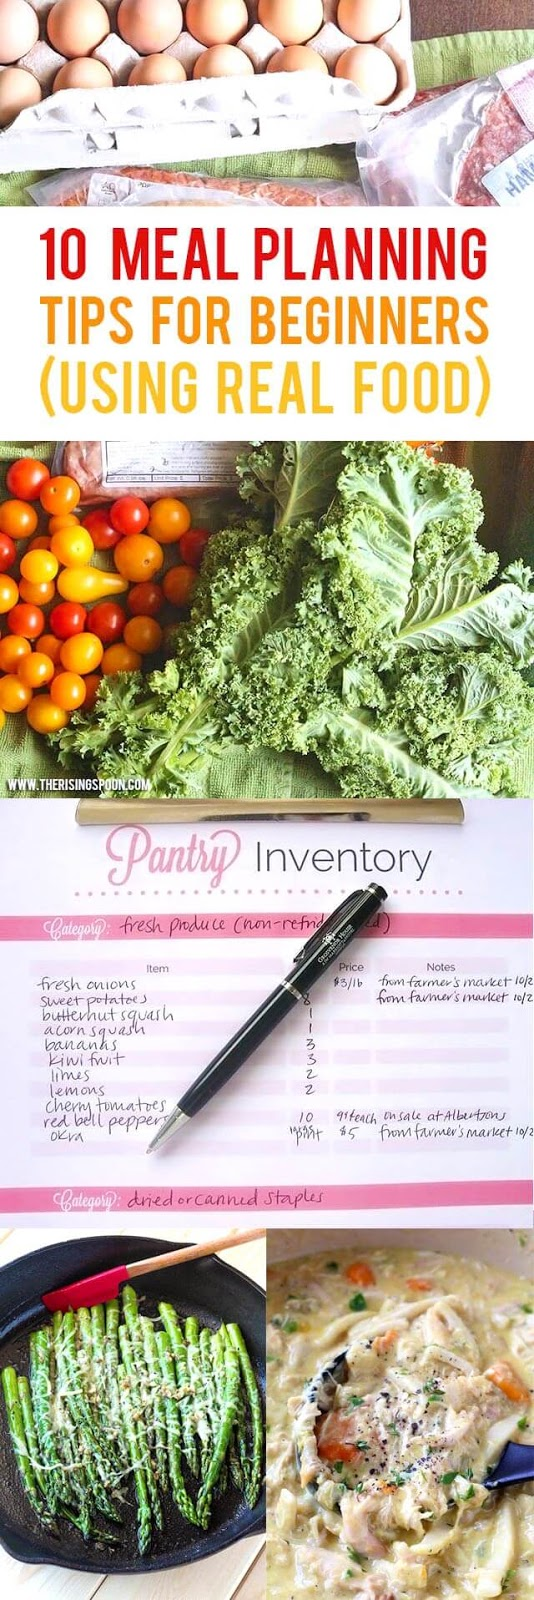 Are you a beginner who'd like to start meal planning, but the idea of actually doing it makes you want to pull out your hair? I'm with you! Check out my post for some easy tips to help you ease into the habit of planning, so you can start wasting less food, saving more money, and stressing less about what's for dinner.